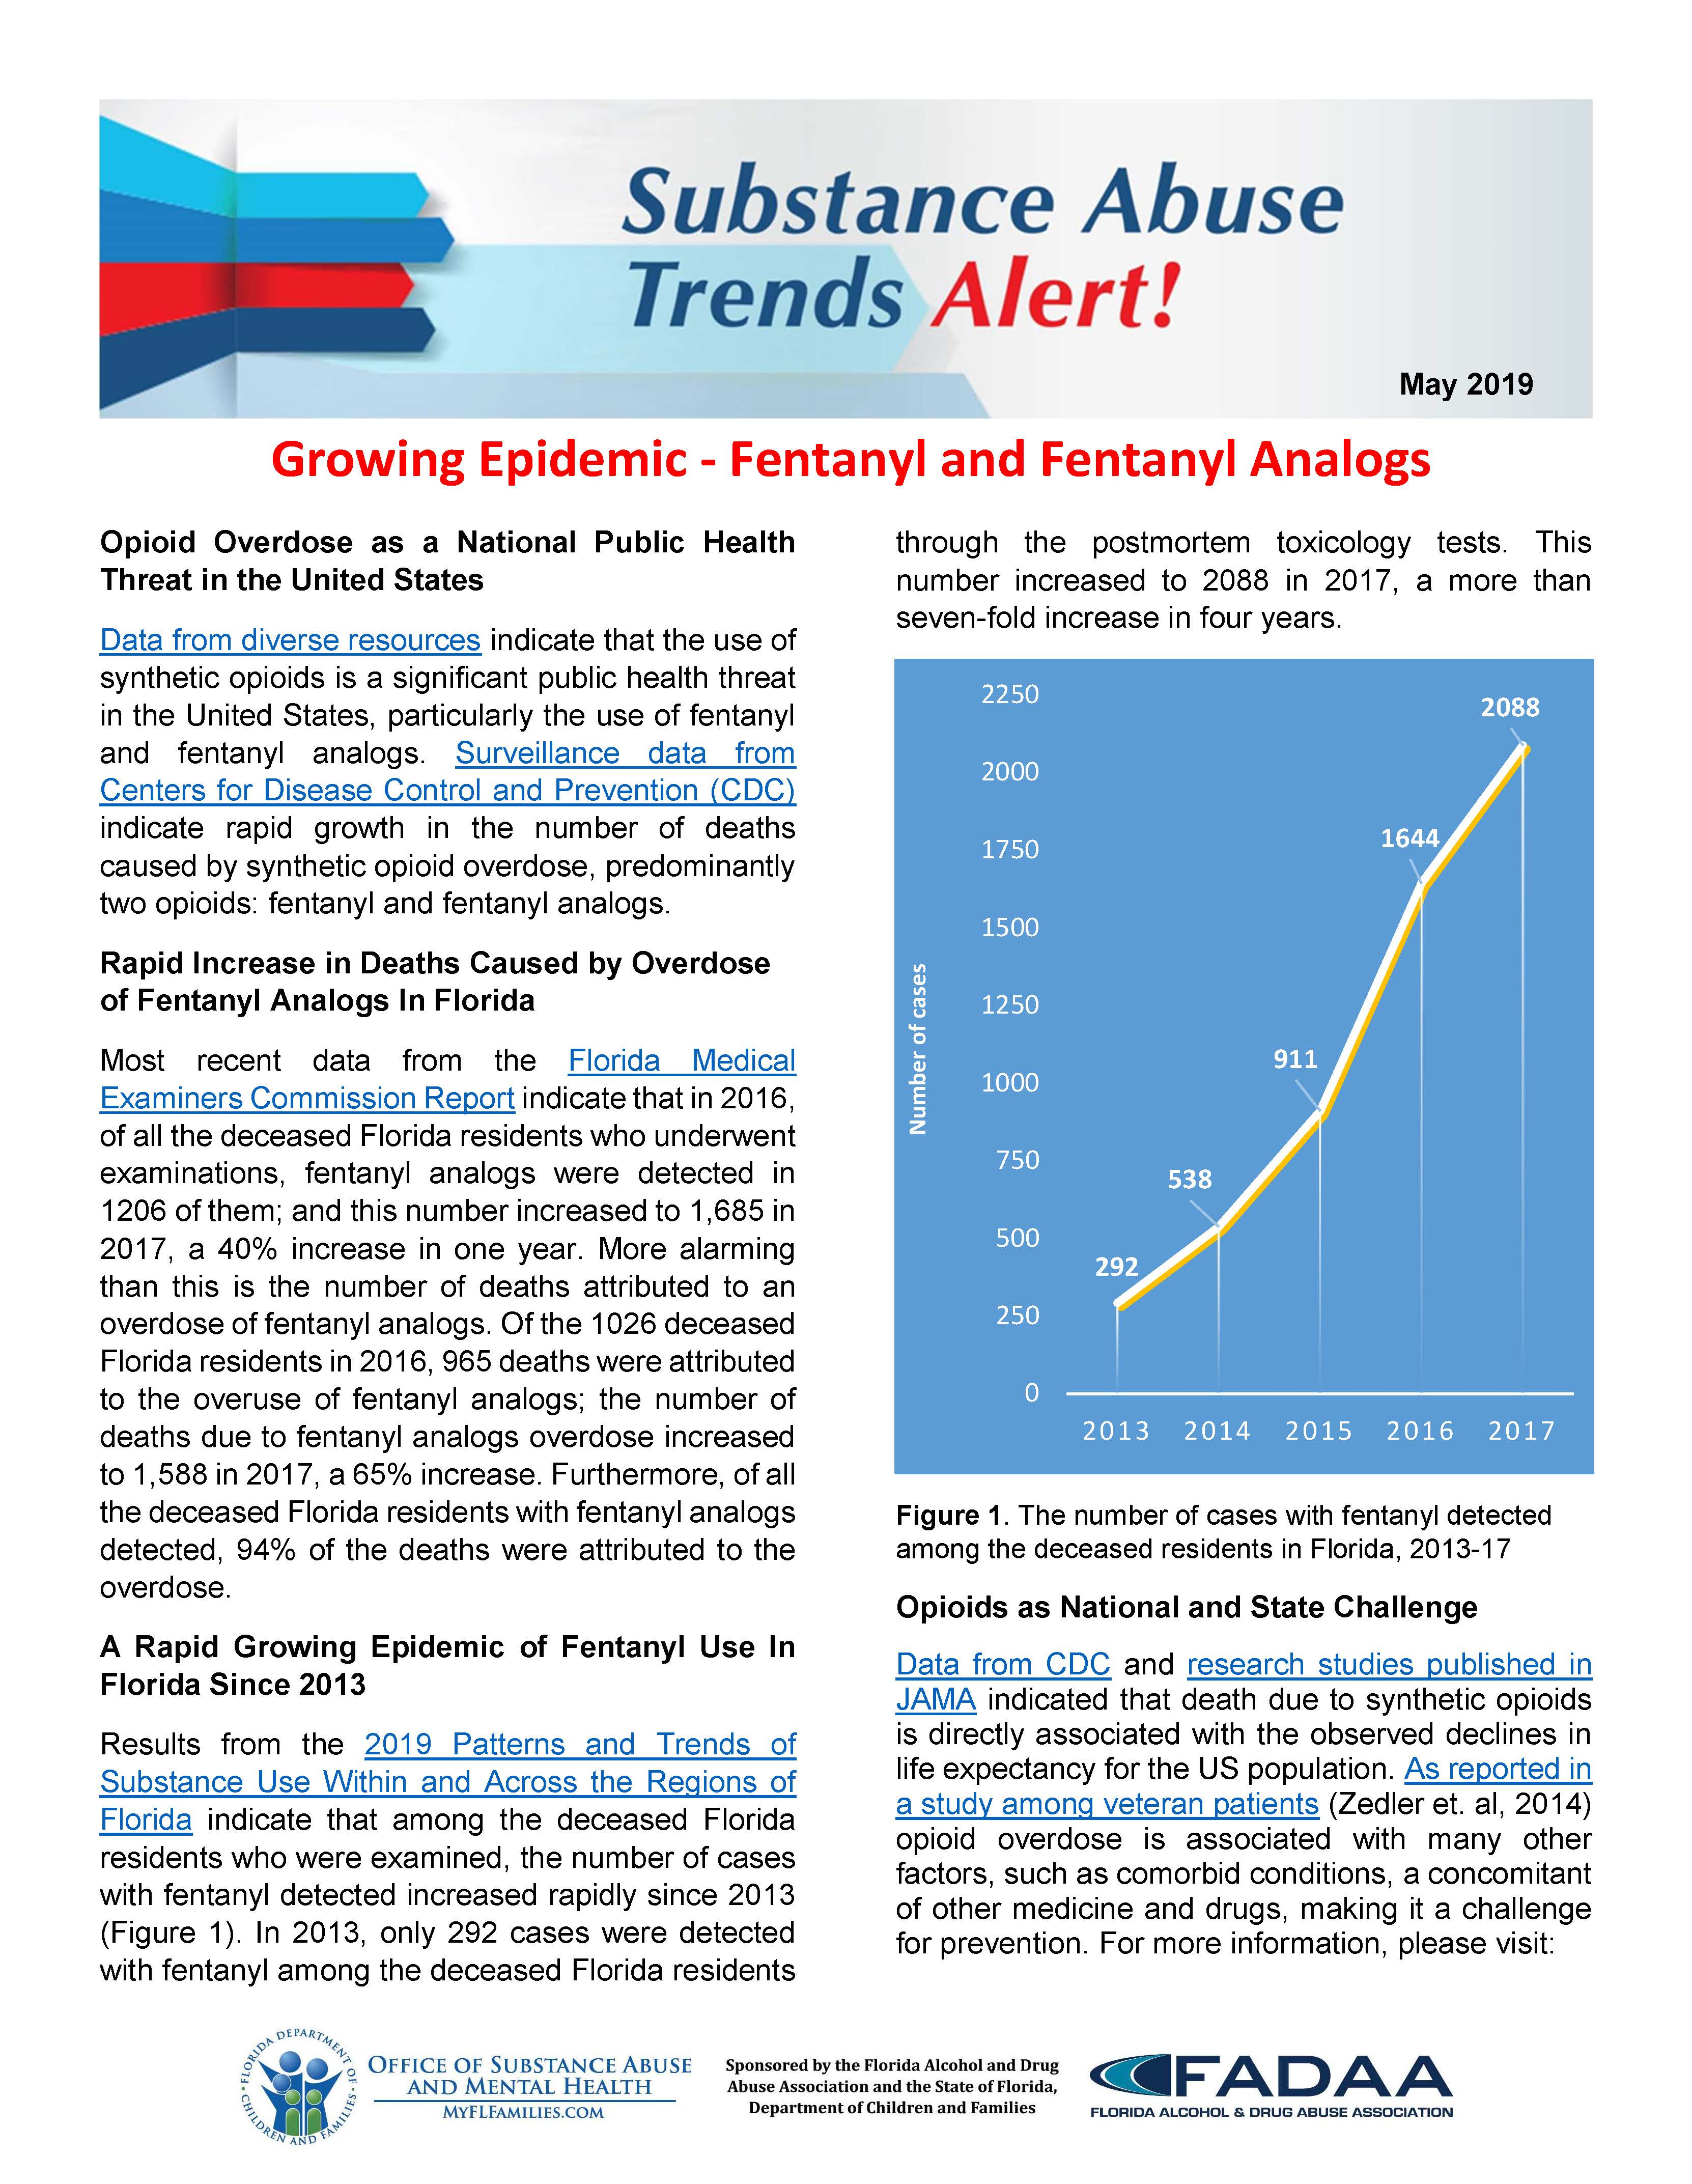 FADAA Substance Abuse Trends Alert May 2019 - Growing Epidemic - Fentanyl and Fentanyl Analogs - Cover